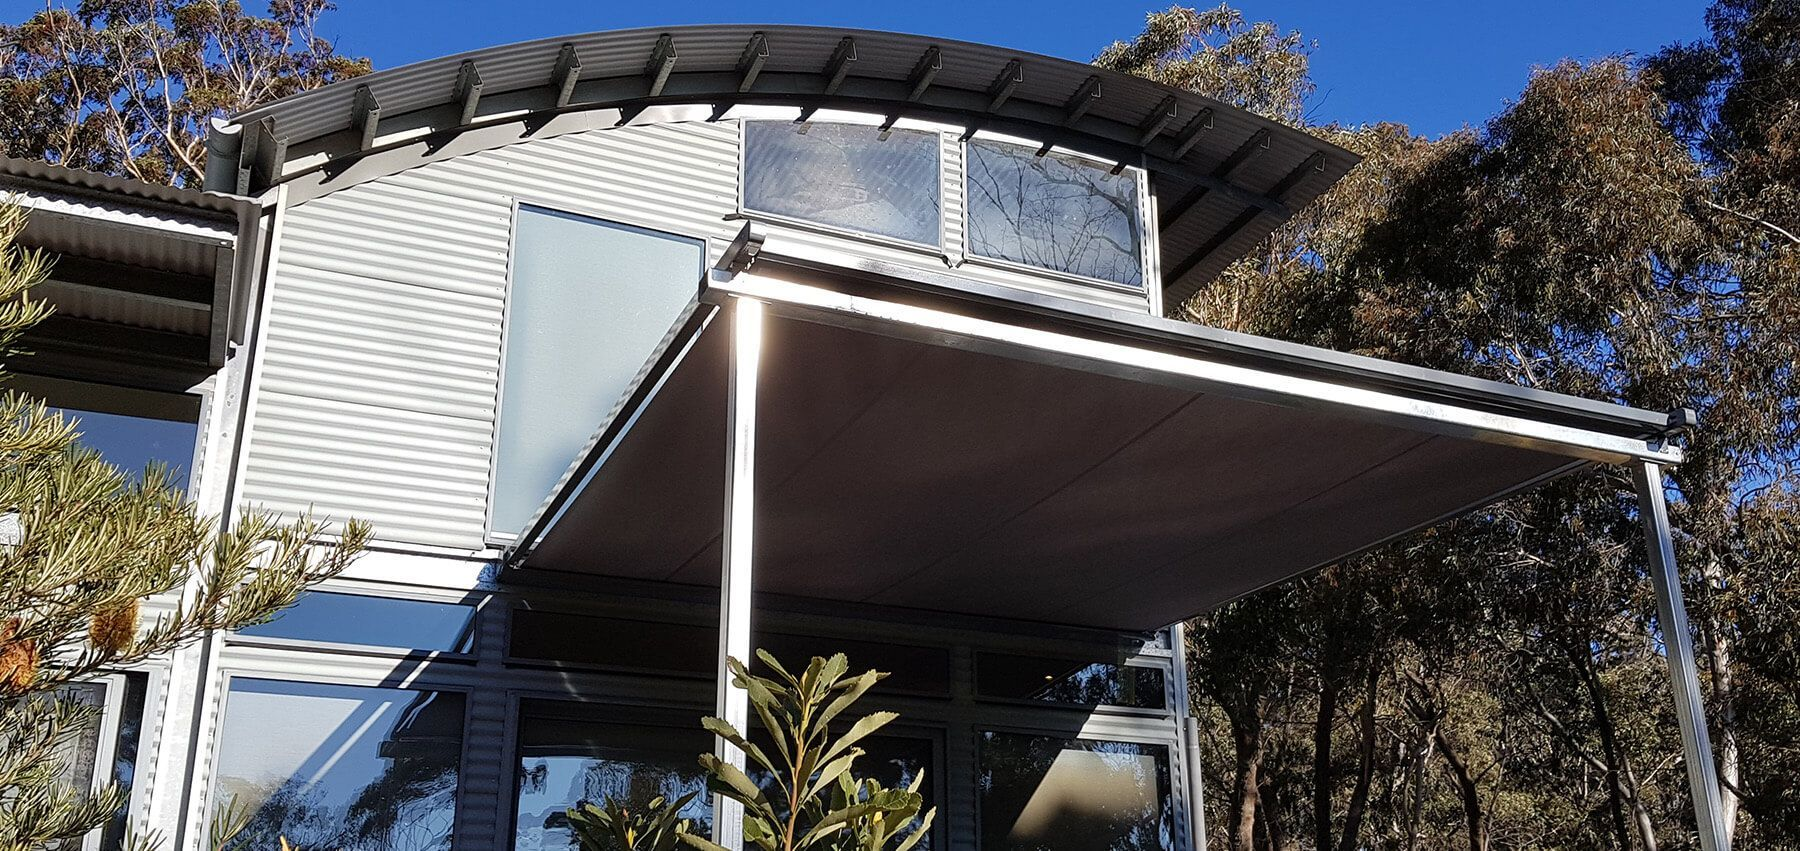 Eureka Conservatory Awnings The Eureka Conservatory Awning Is A Temporary Roof Style Awning Especially In 2020 Outdoor Awnings Backyard Renovations Outdoor Shade